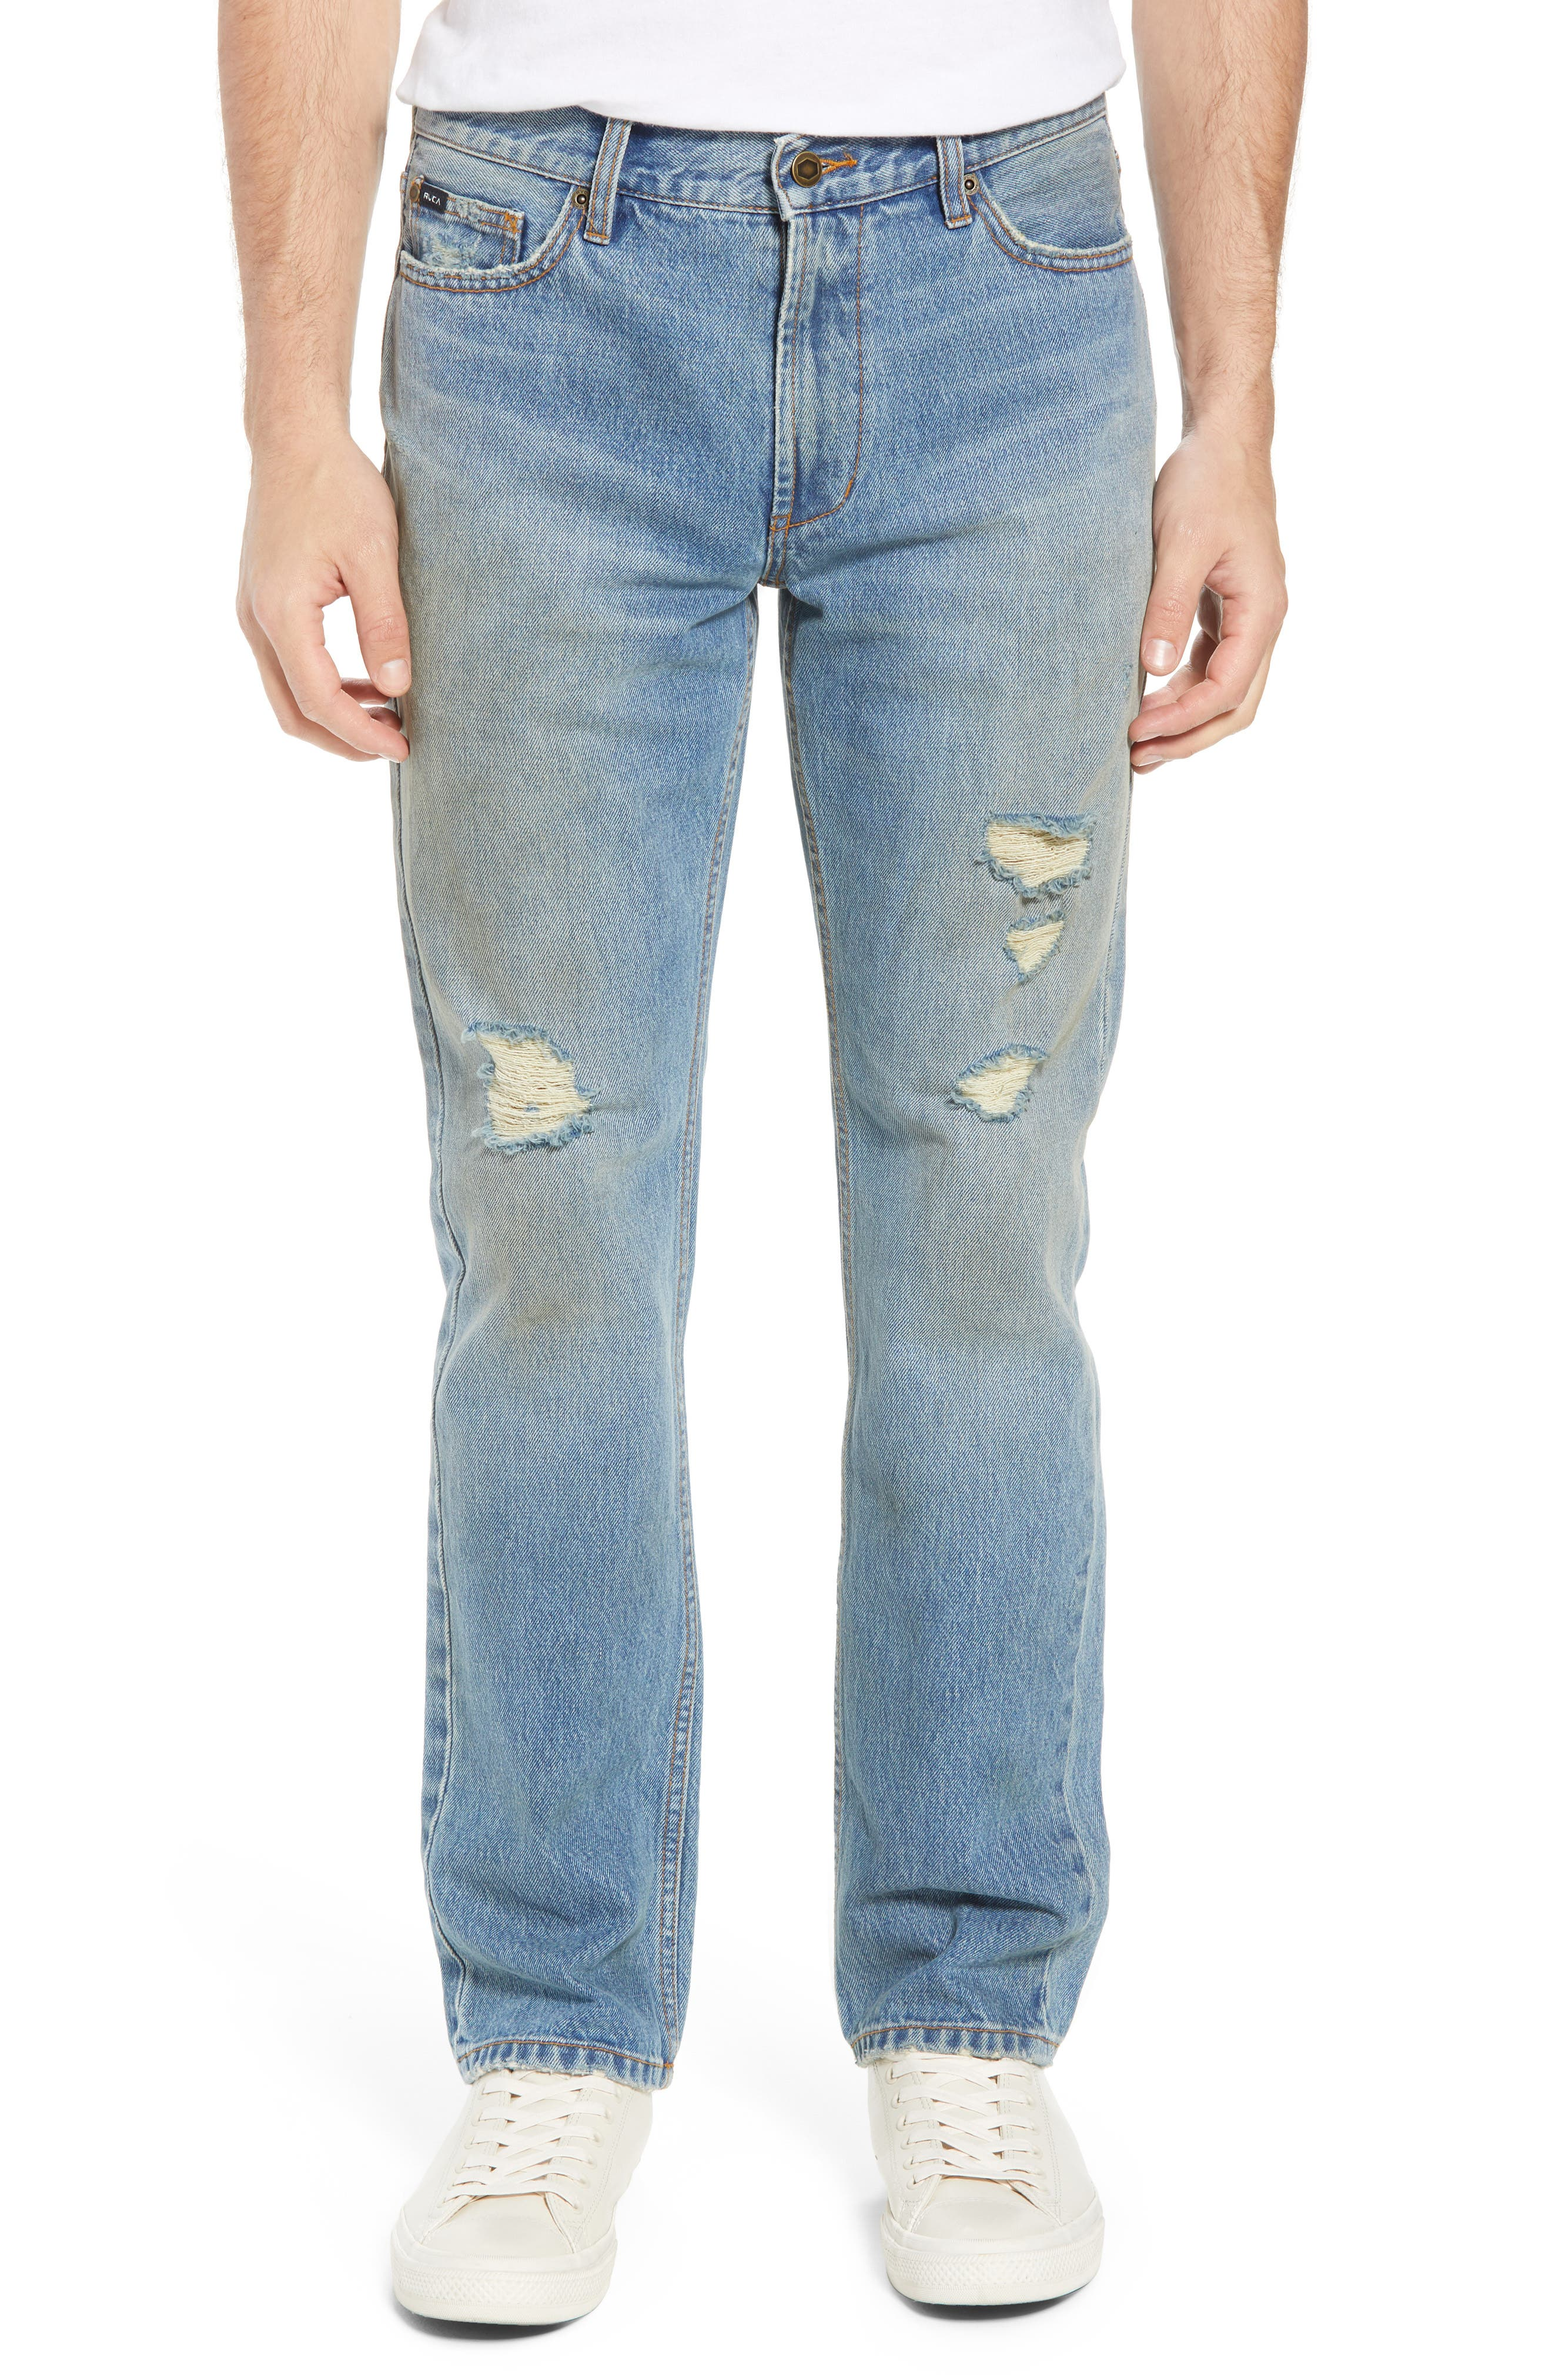 Stay RVCA Slim Fit Jeans,                             Main thumbnail 1, color,                             Blue